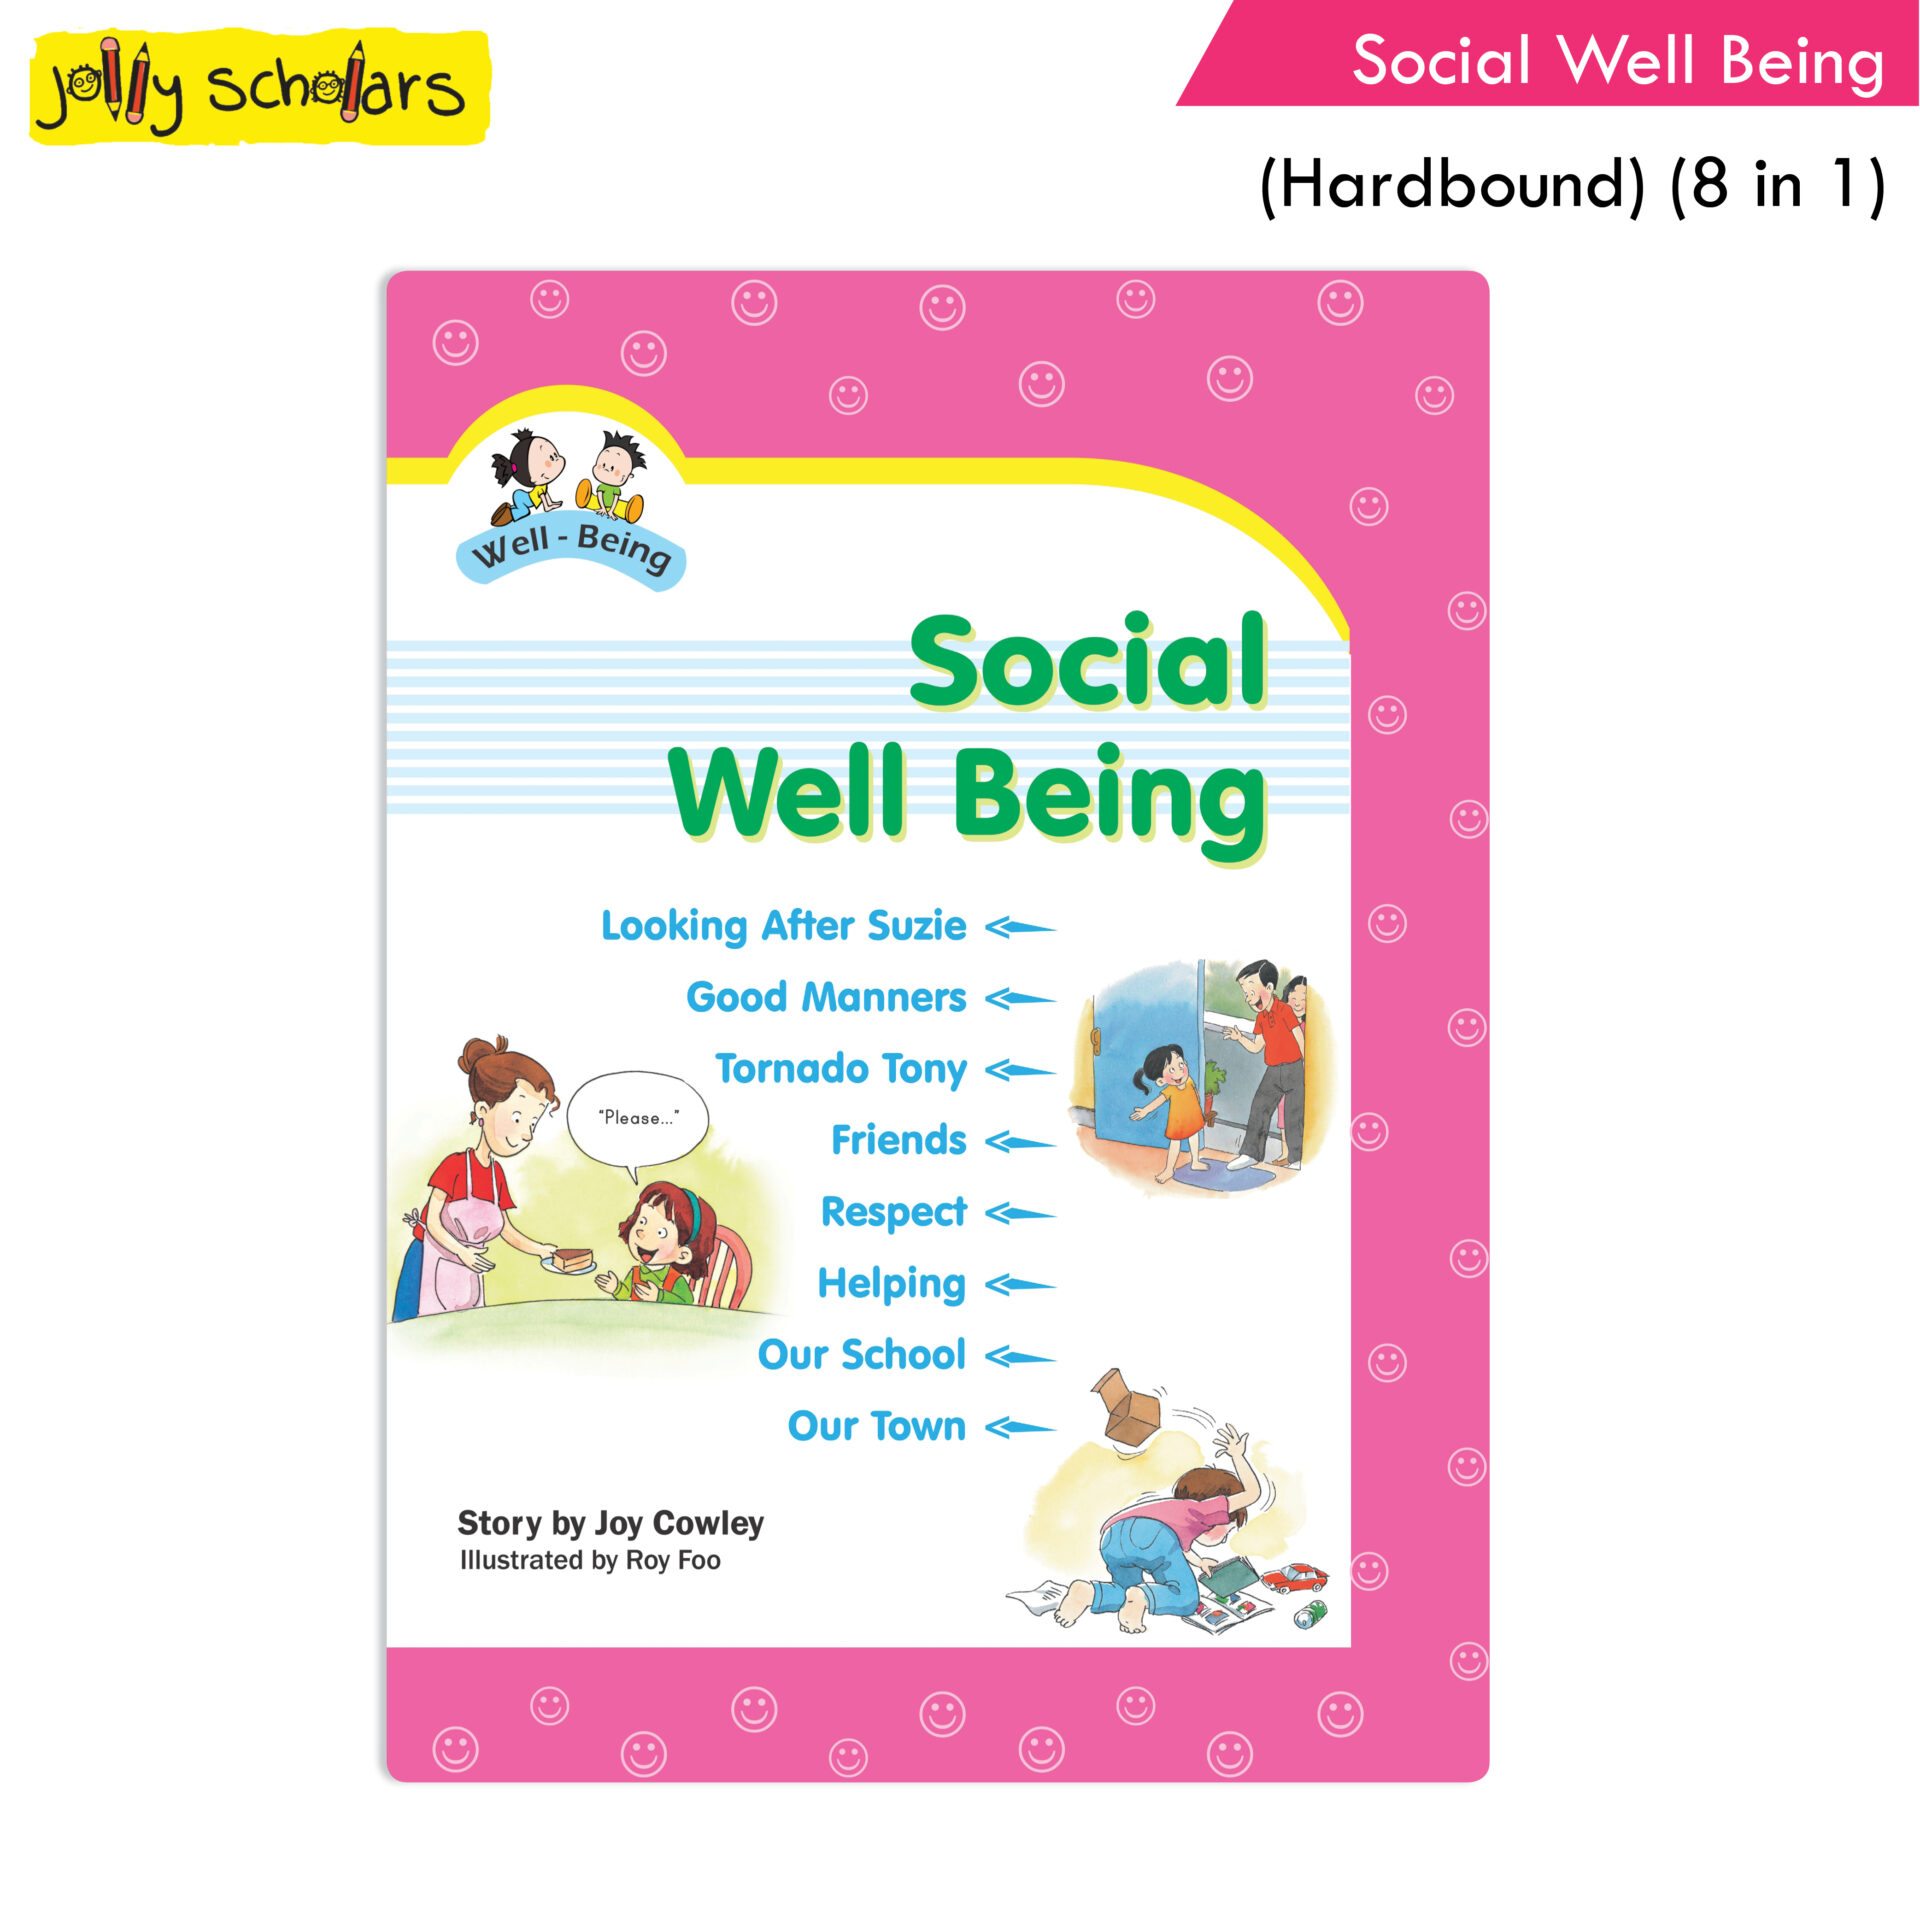 Jolly Scholars Social Well Being Hard Bound 8 in 1 1